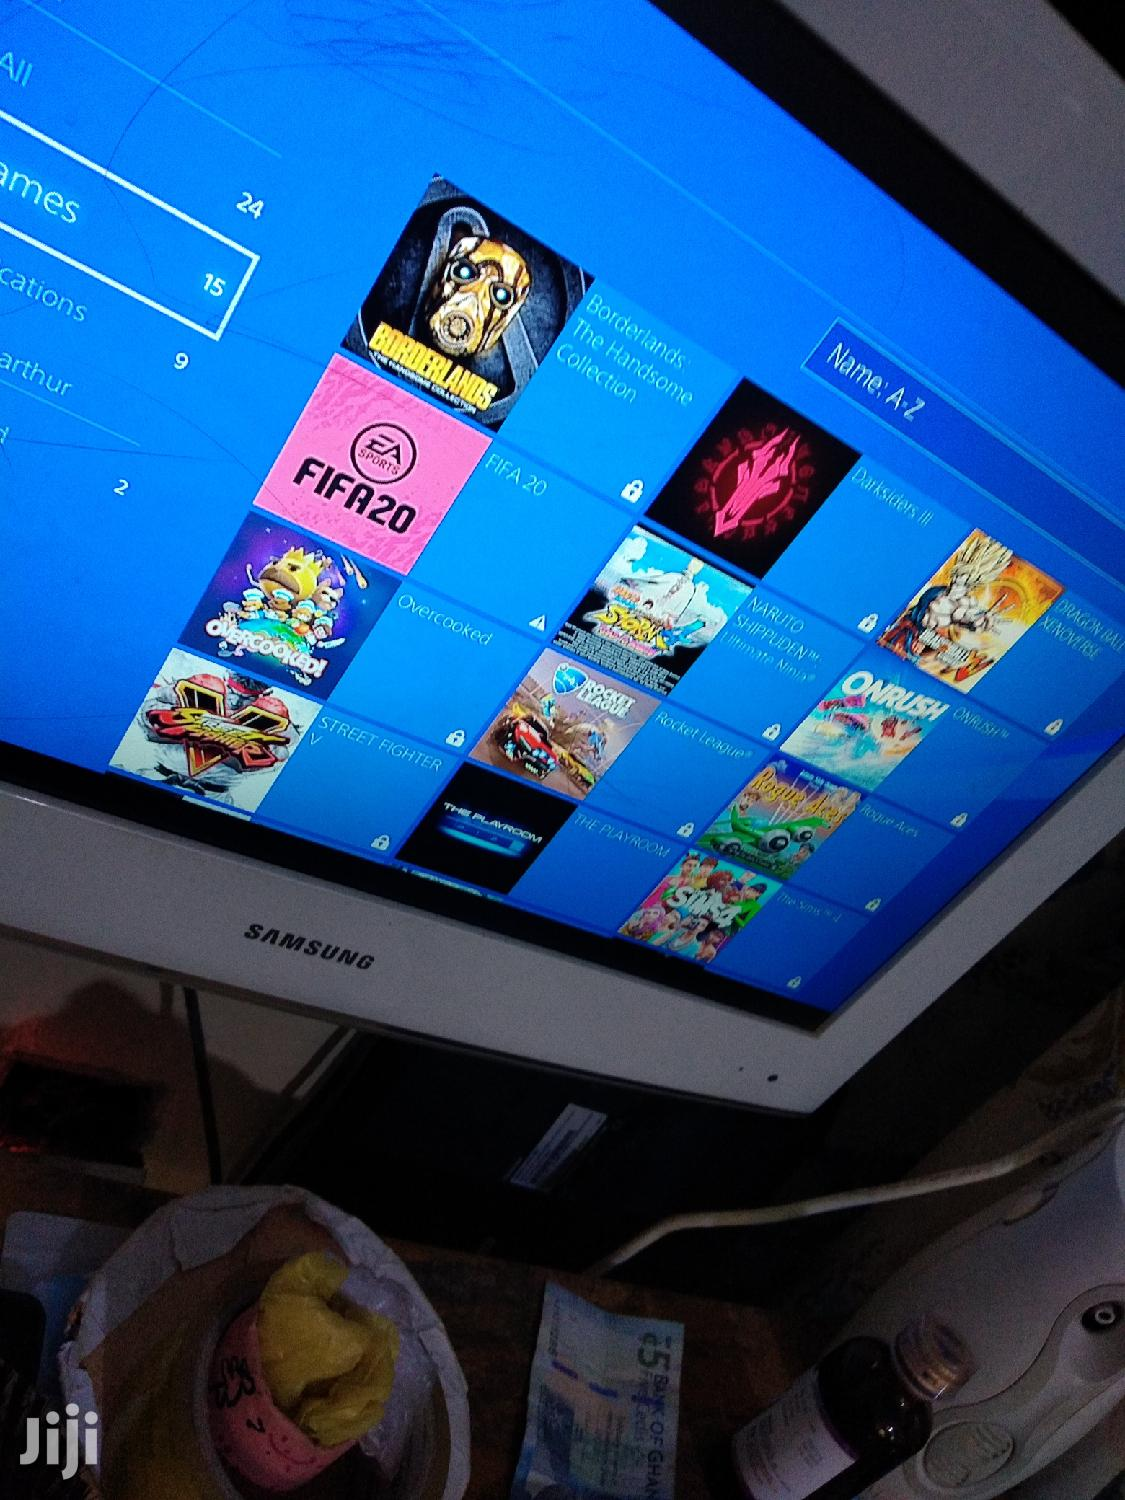 Archive: Ps4 Offline And Online Account